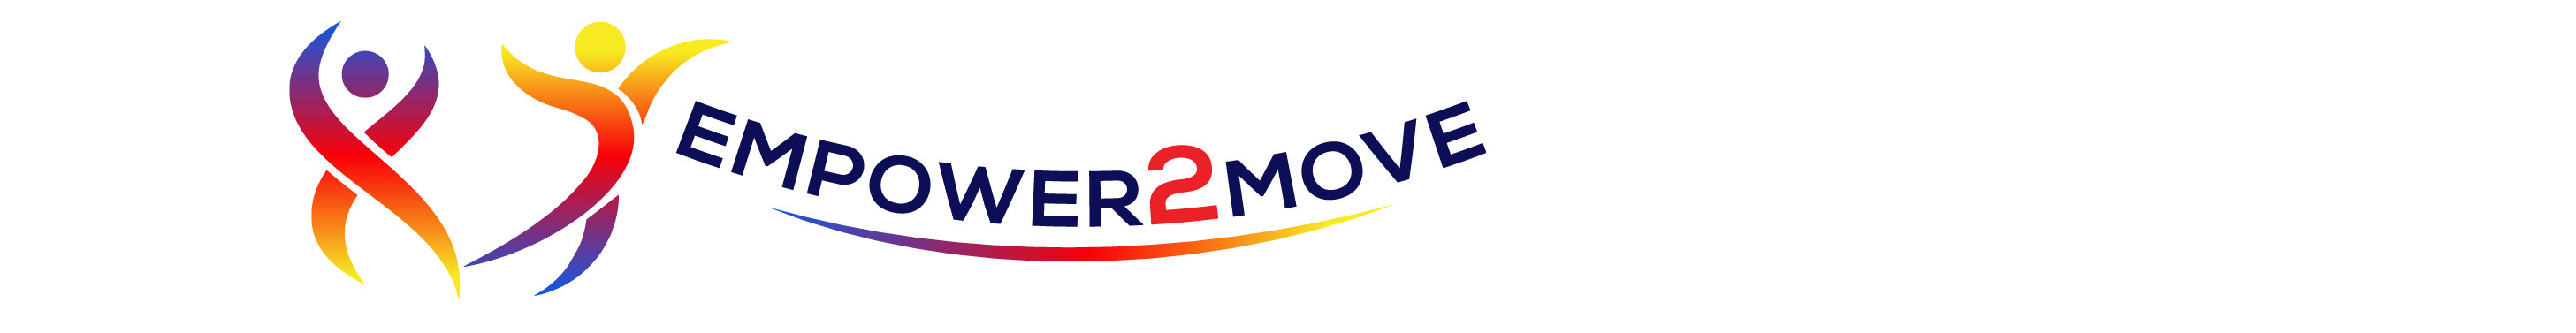 Empower to move logo